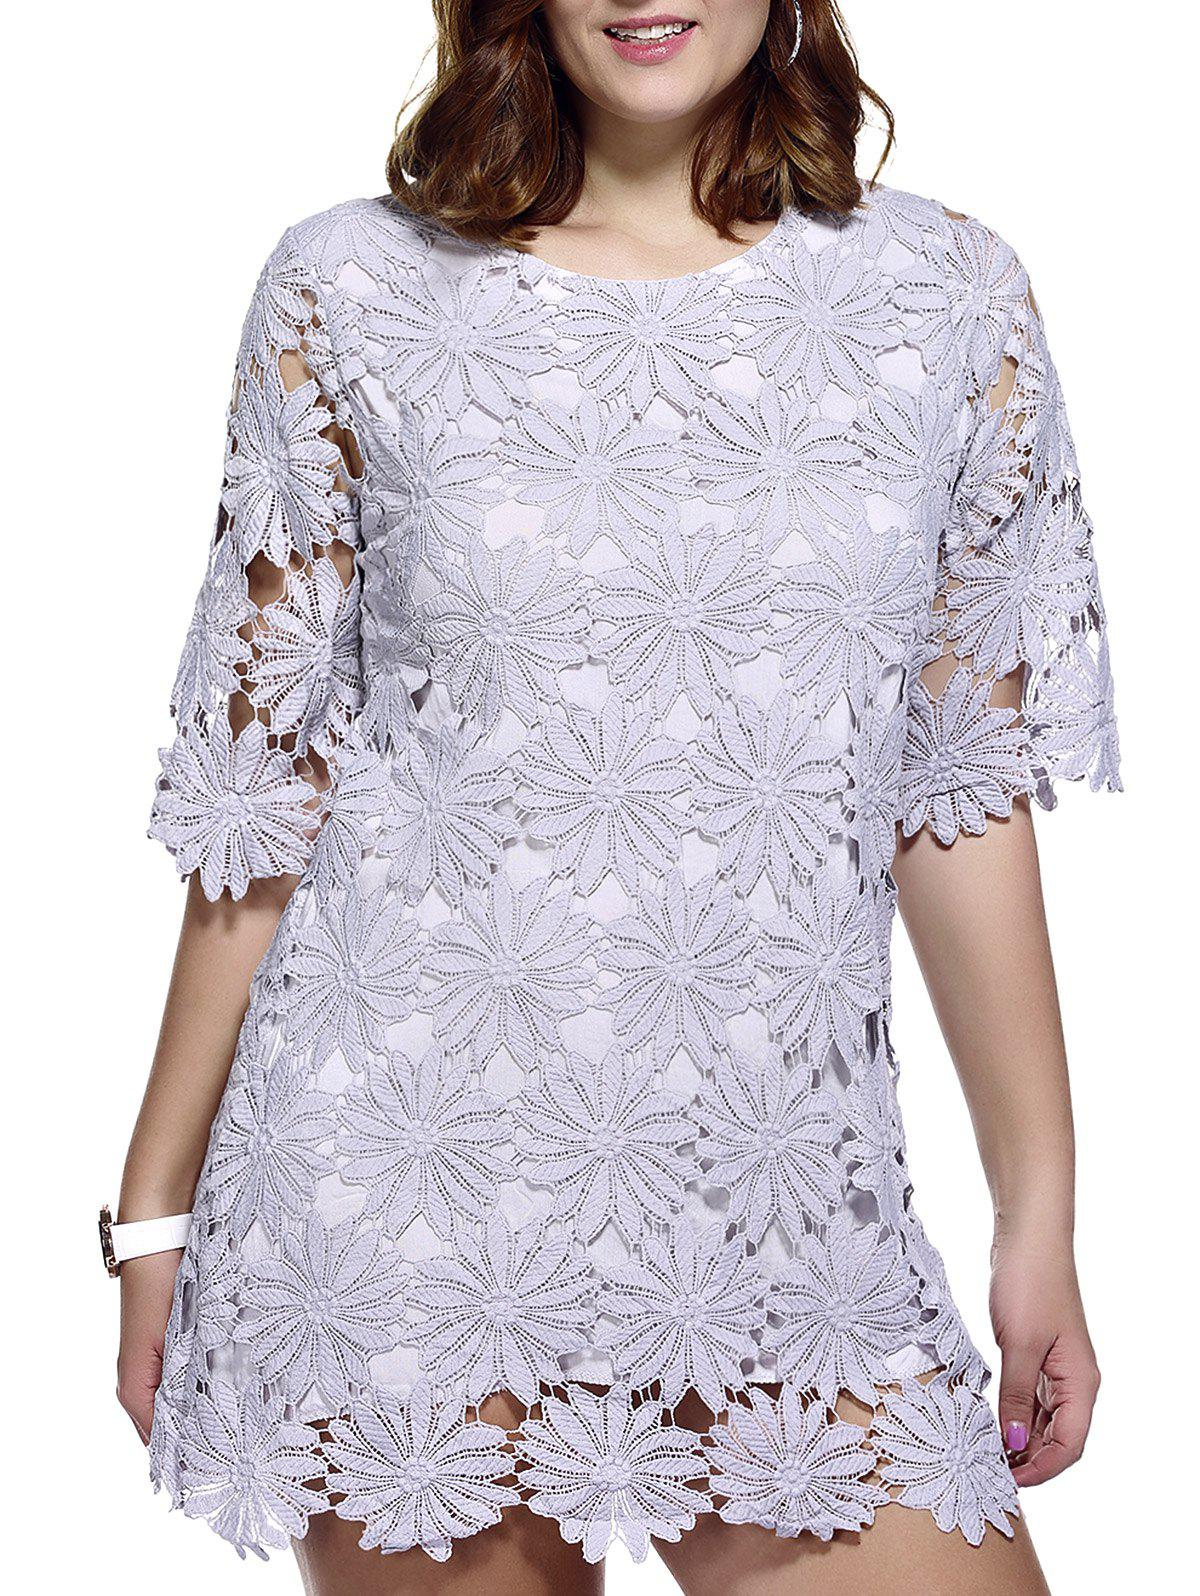 Stylish Women's Plus Size Floral Pattern Lace Overlay Dress - GRAY ONE SIZE(FIT SIZE L TO 3XL)